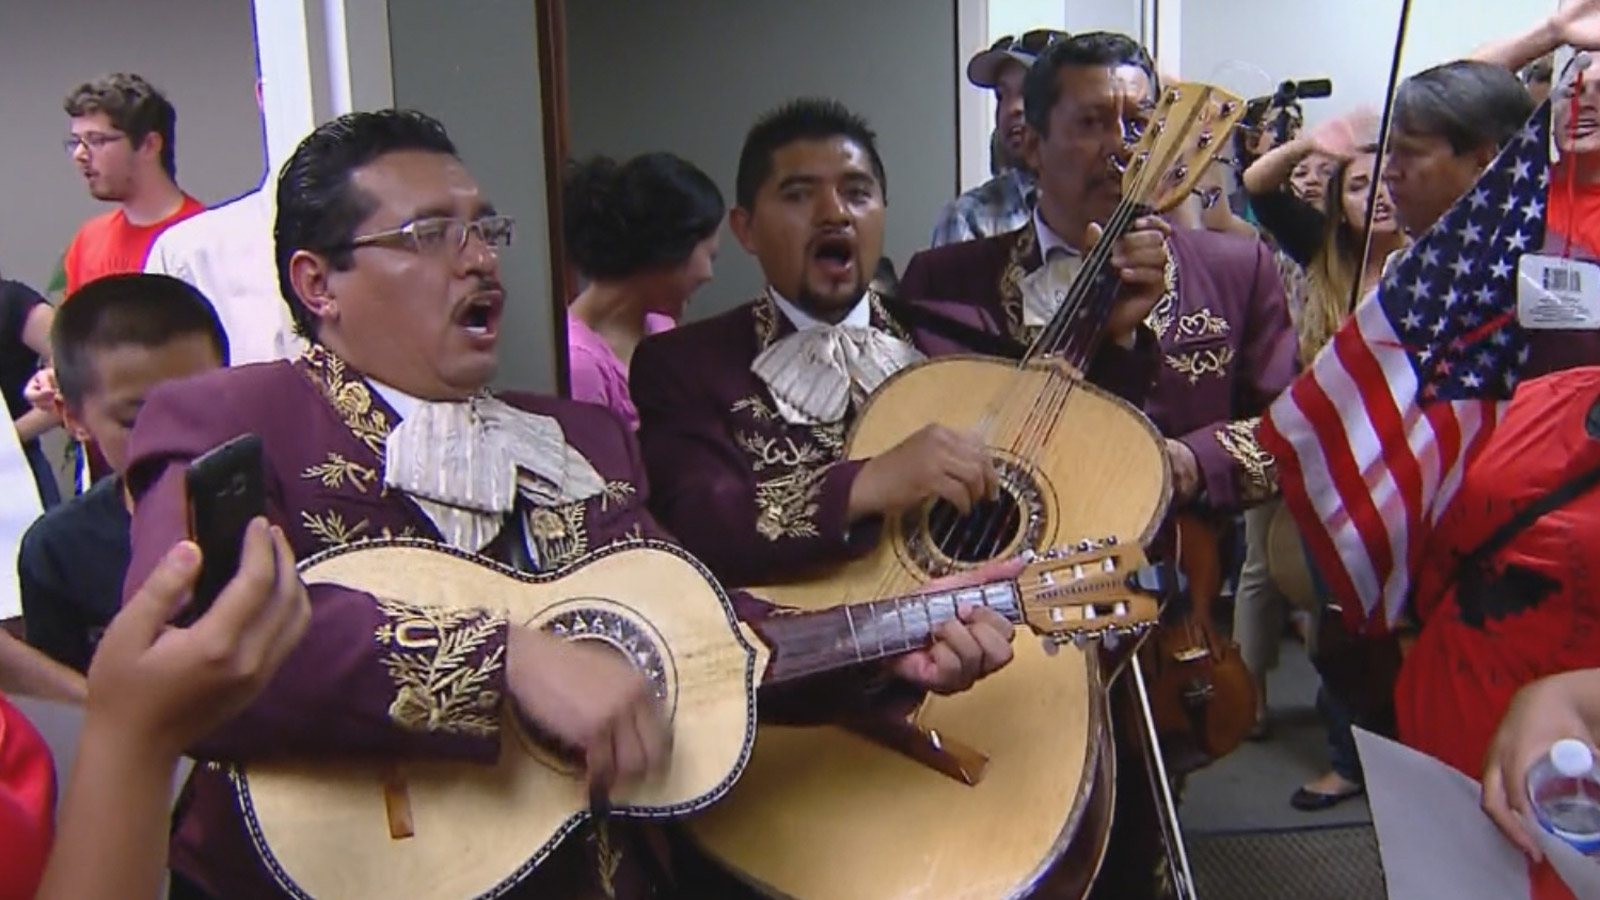 Protesters calling for immigration reform and a mariachi band crowded Rep. Cory Gardner's office on Thursday (credit: CBS)